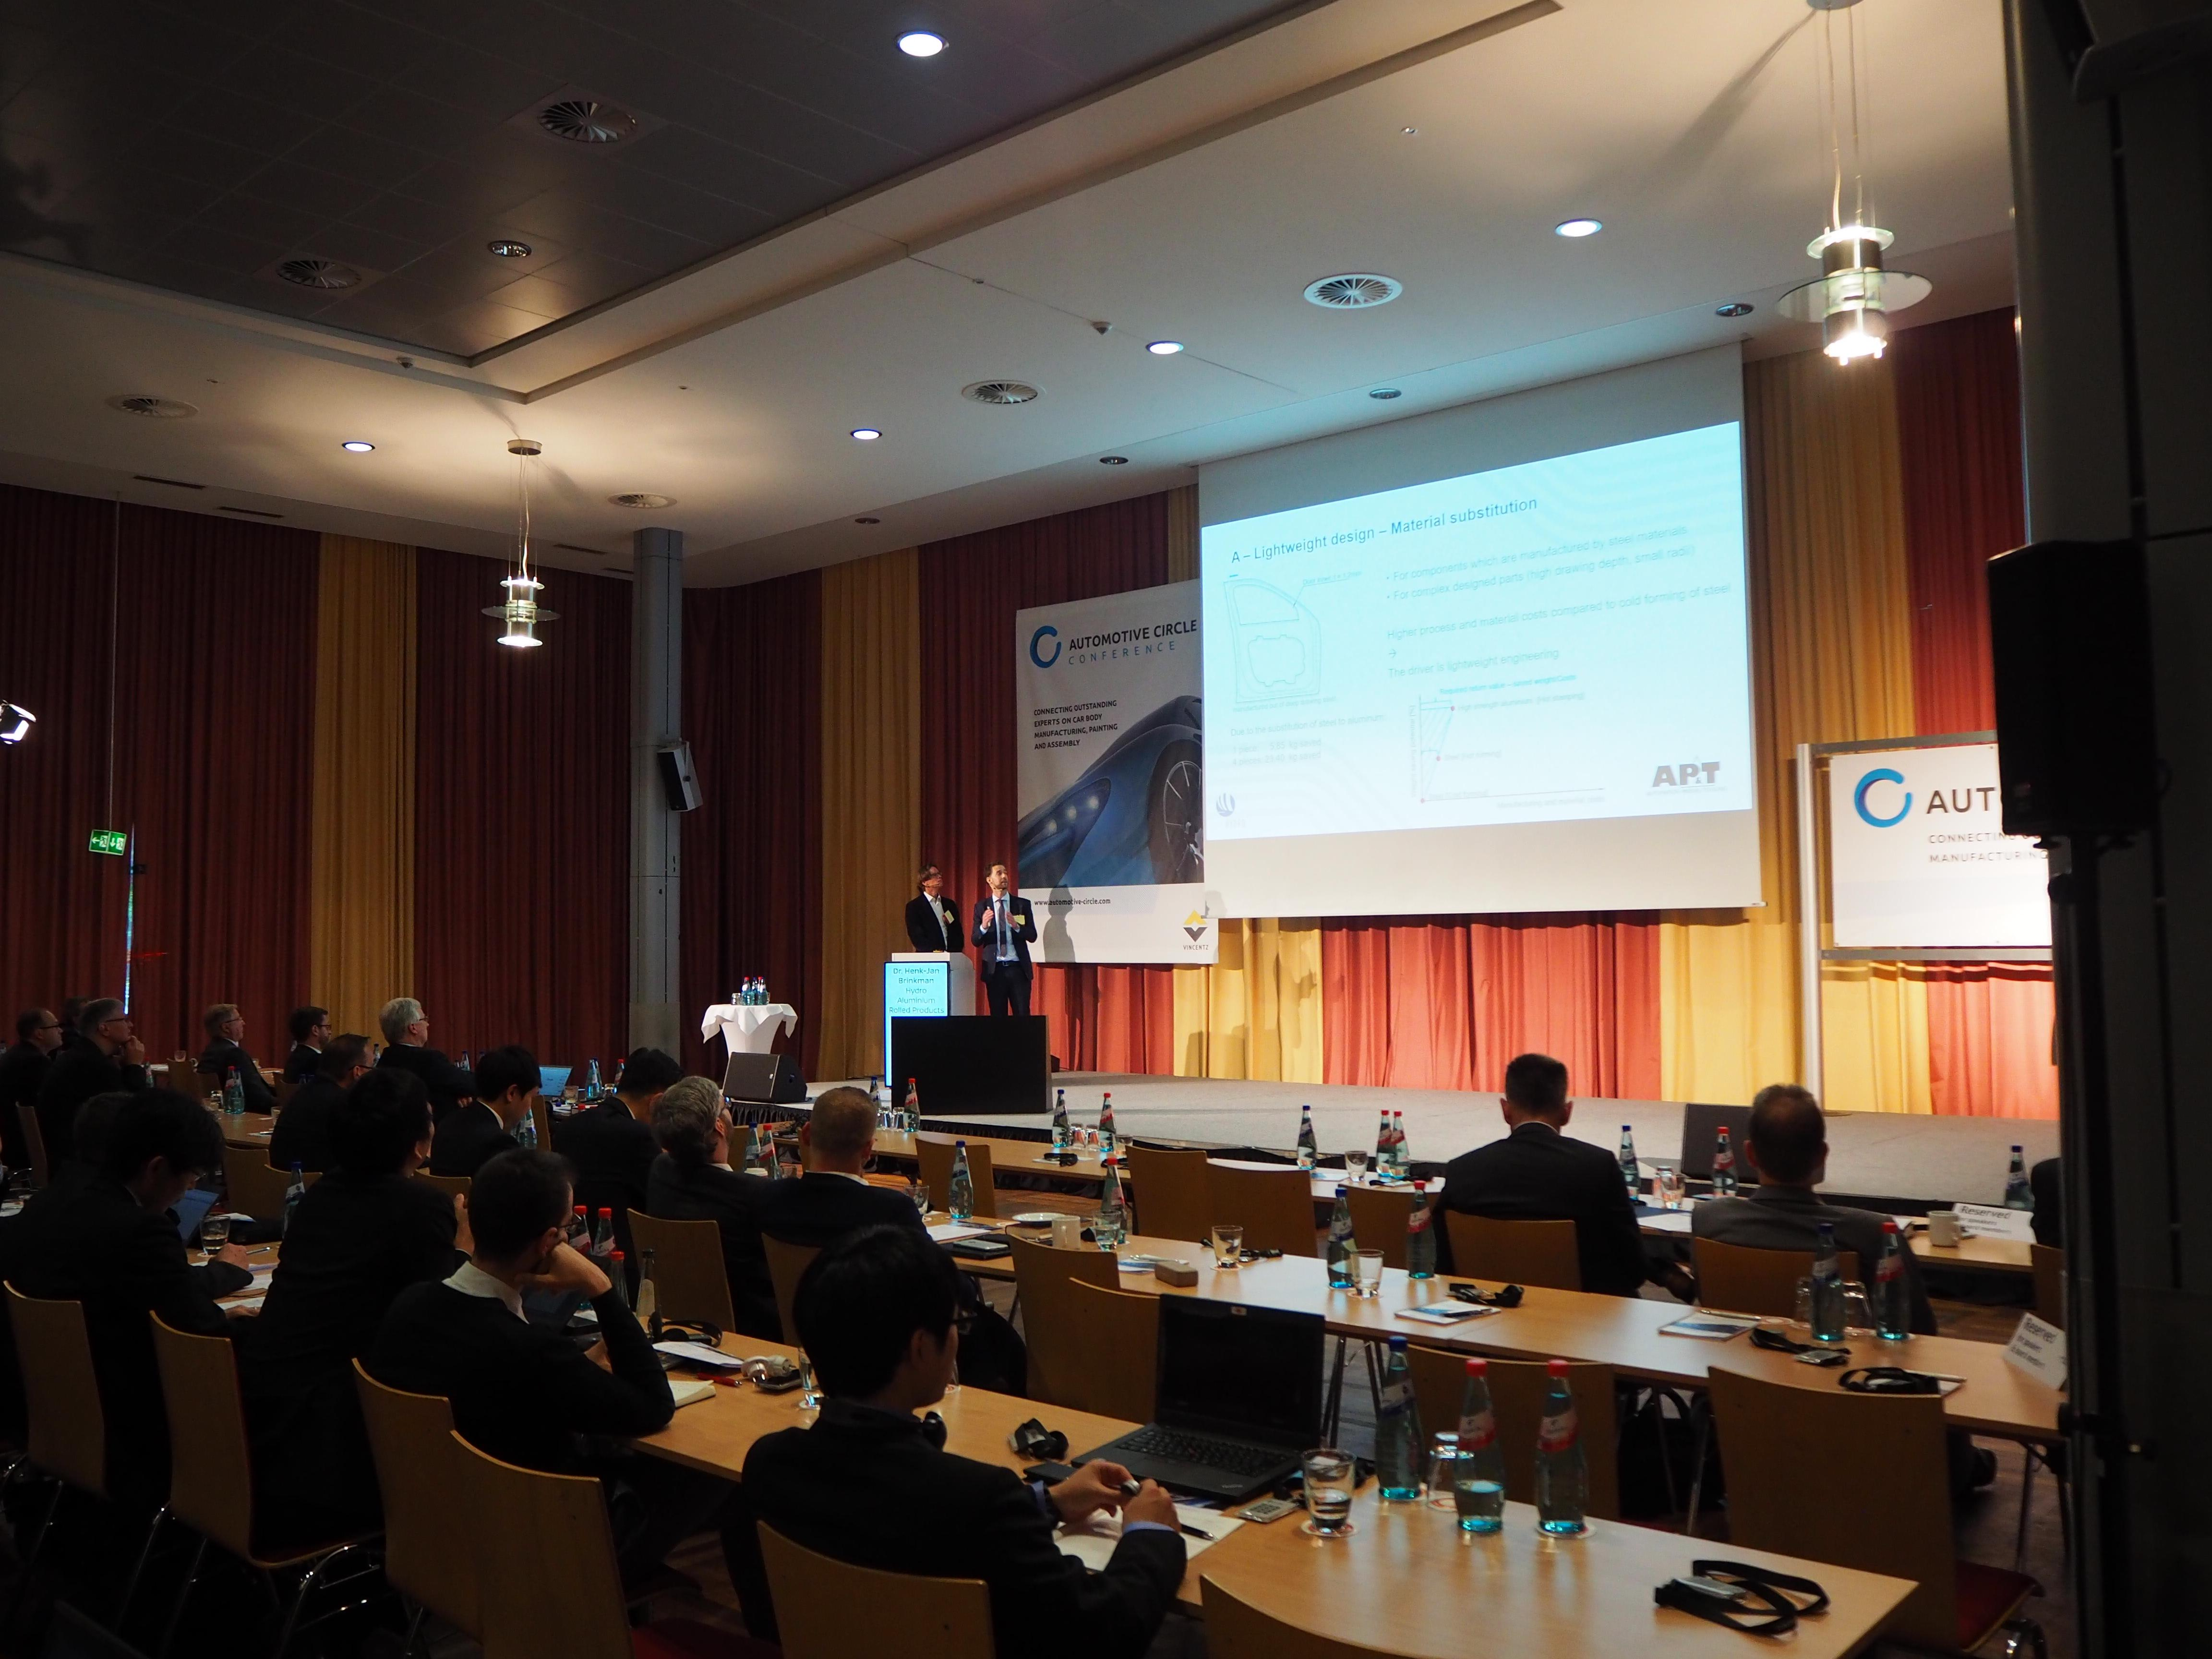 Dr. Michael Machhammer from AP&T and Dr. Henk-Jan Brinkman from Hydro Aluminium presented how hot forming of high-strength aluminum enables new opportunities for manufacturing lightweight and high-strength car body parts. (Photograph: Automotive Circle).